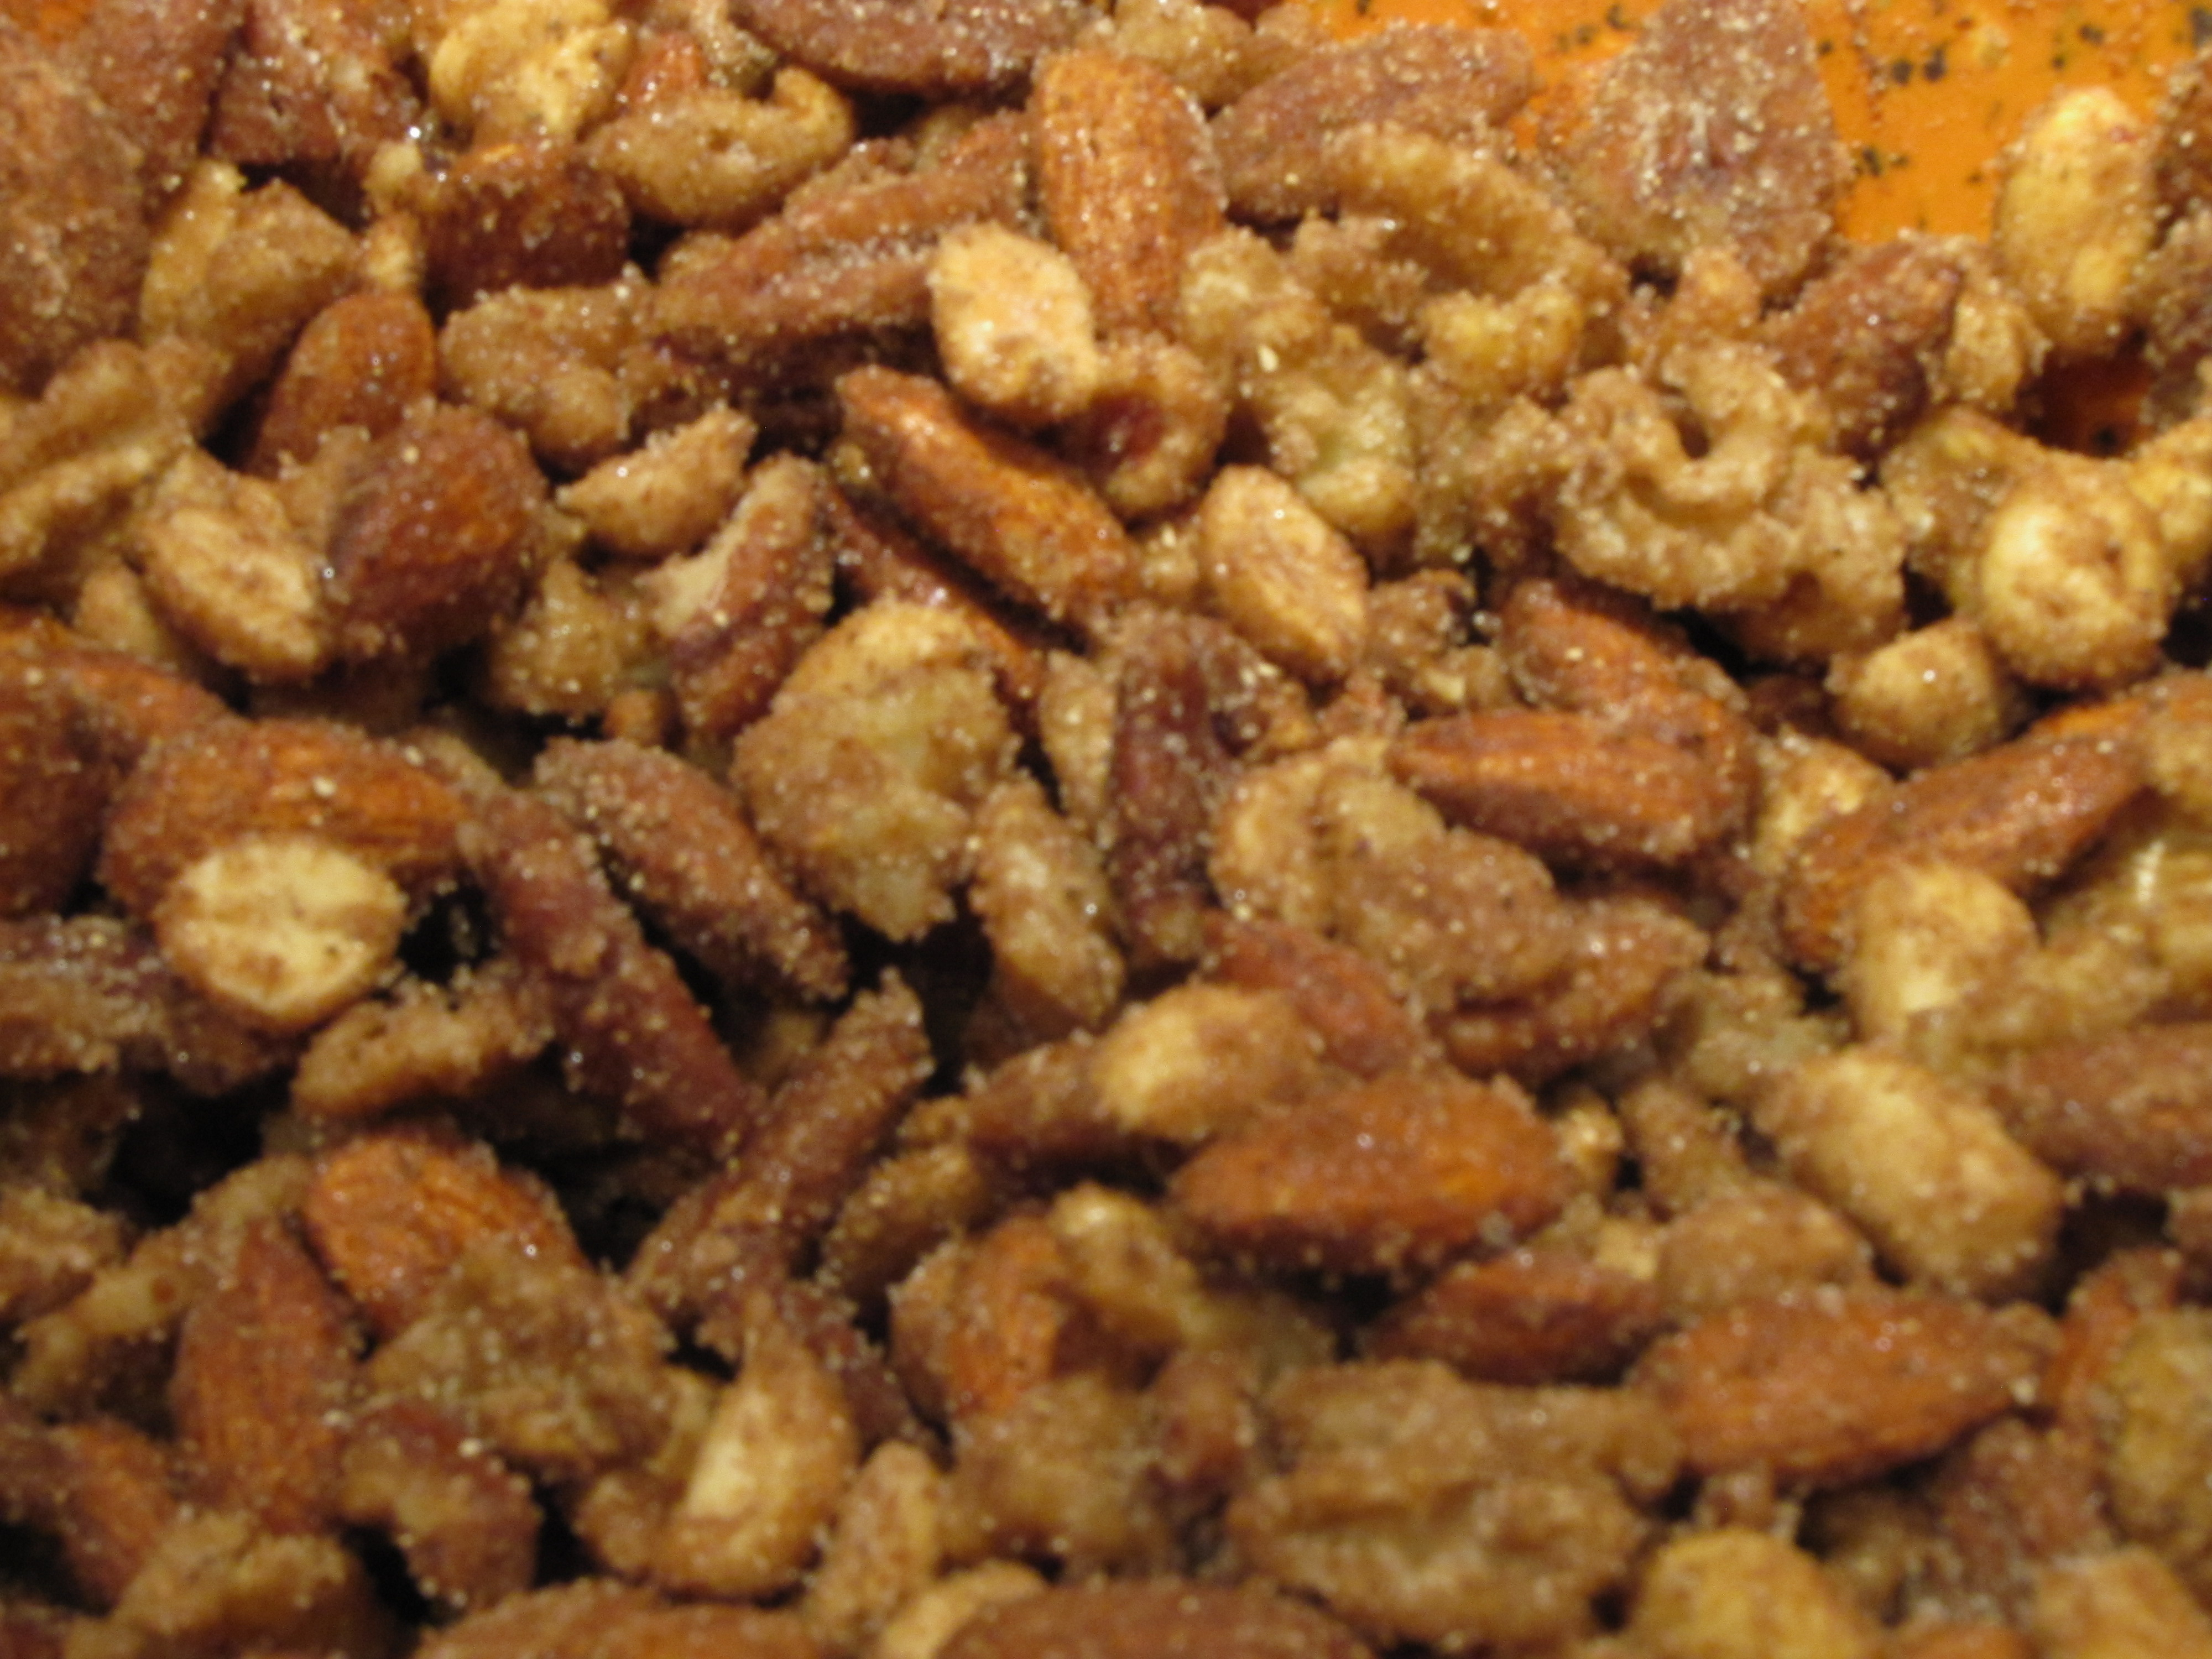 Sugar & Spice Nuts